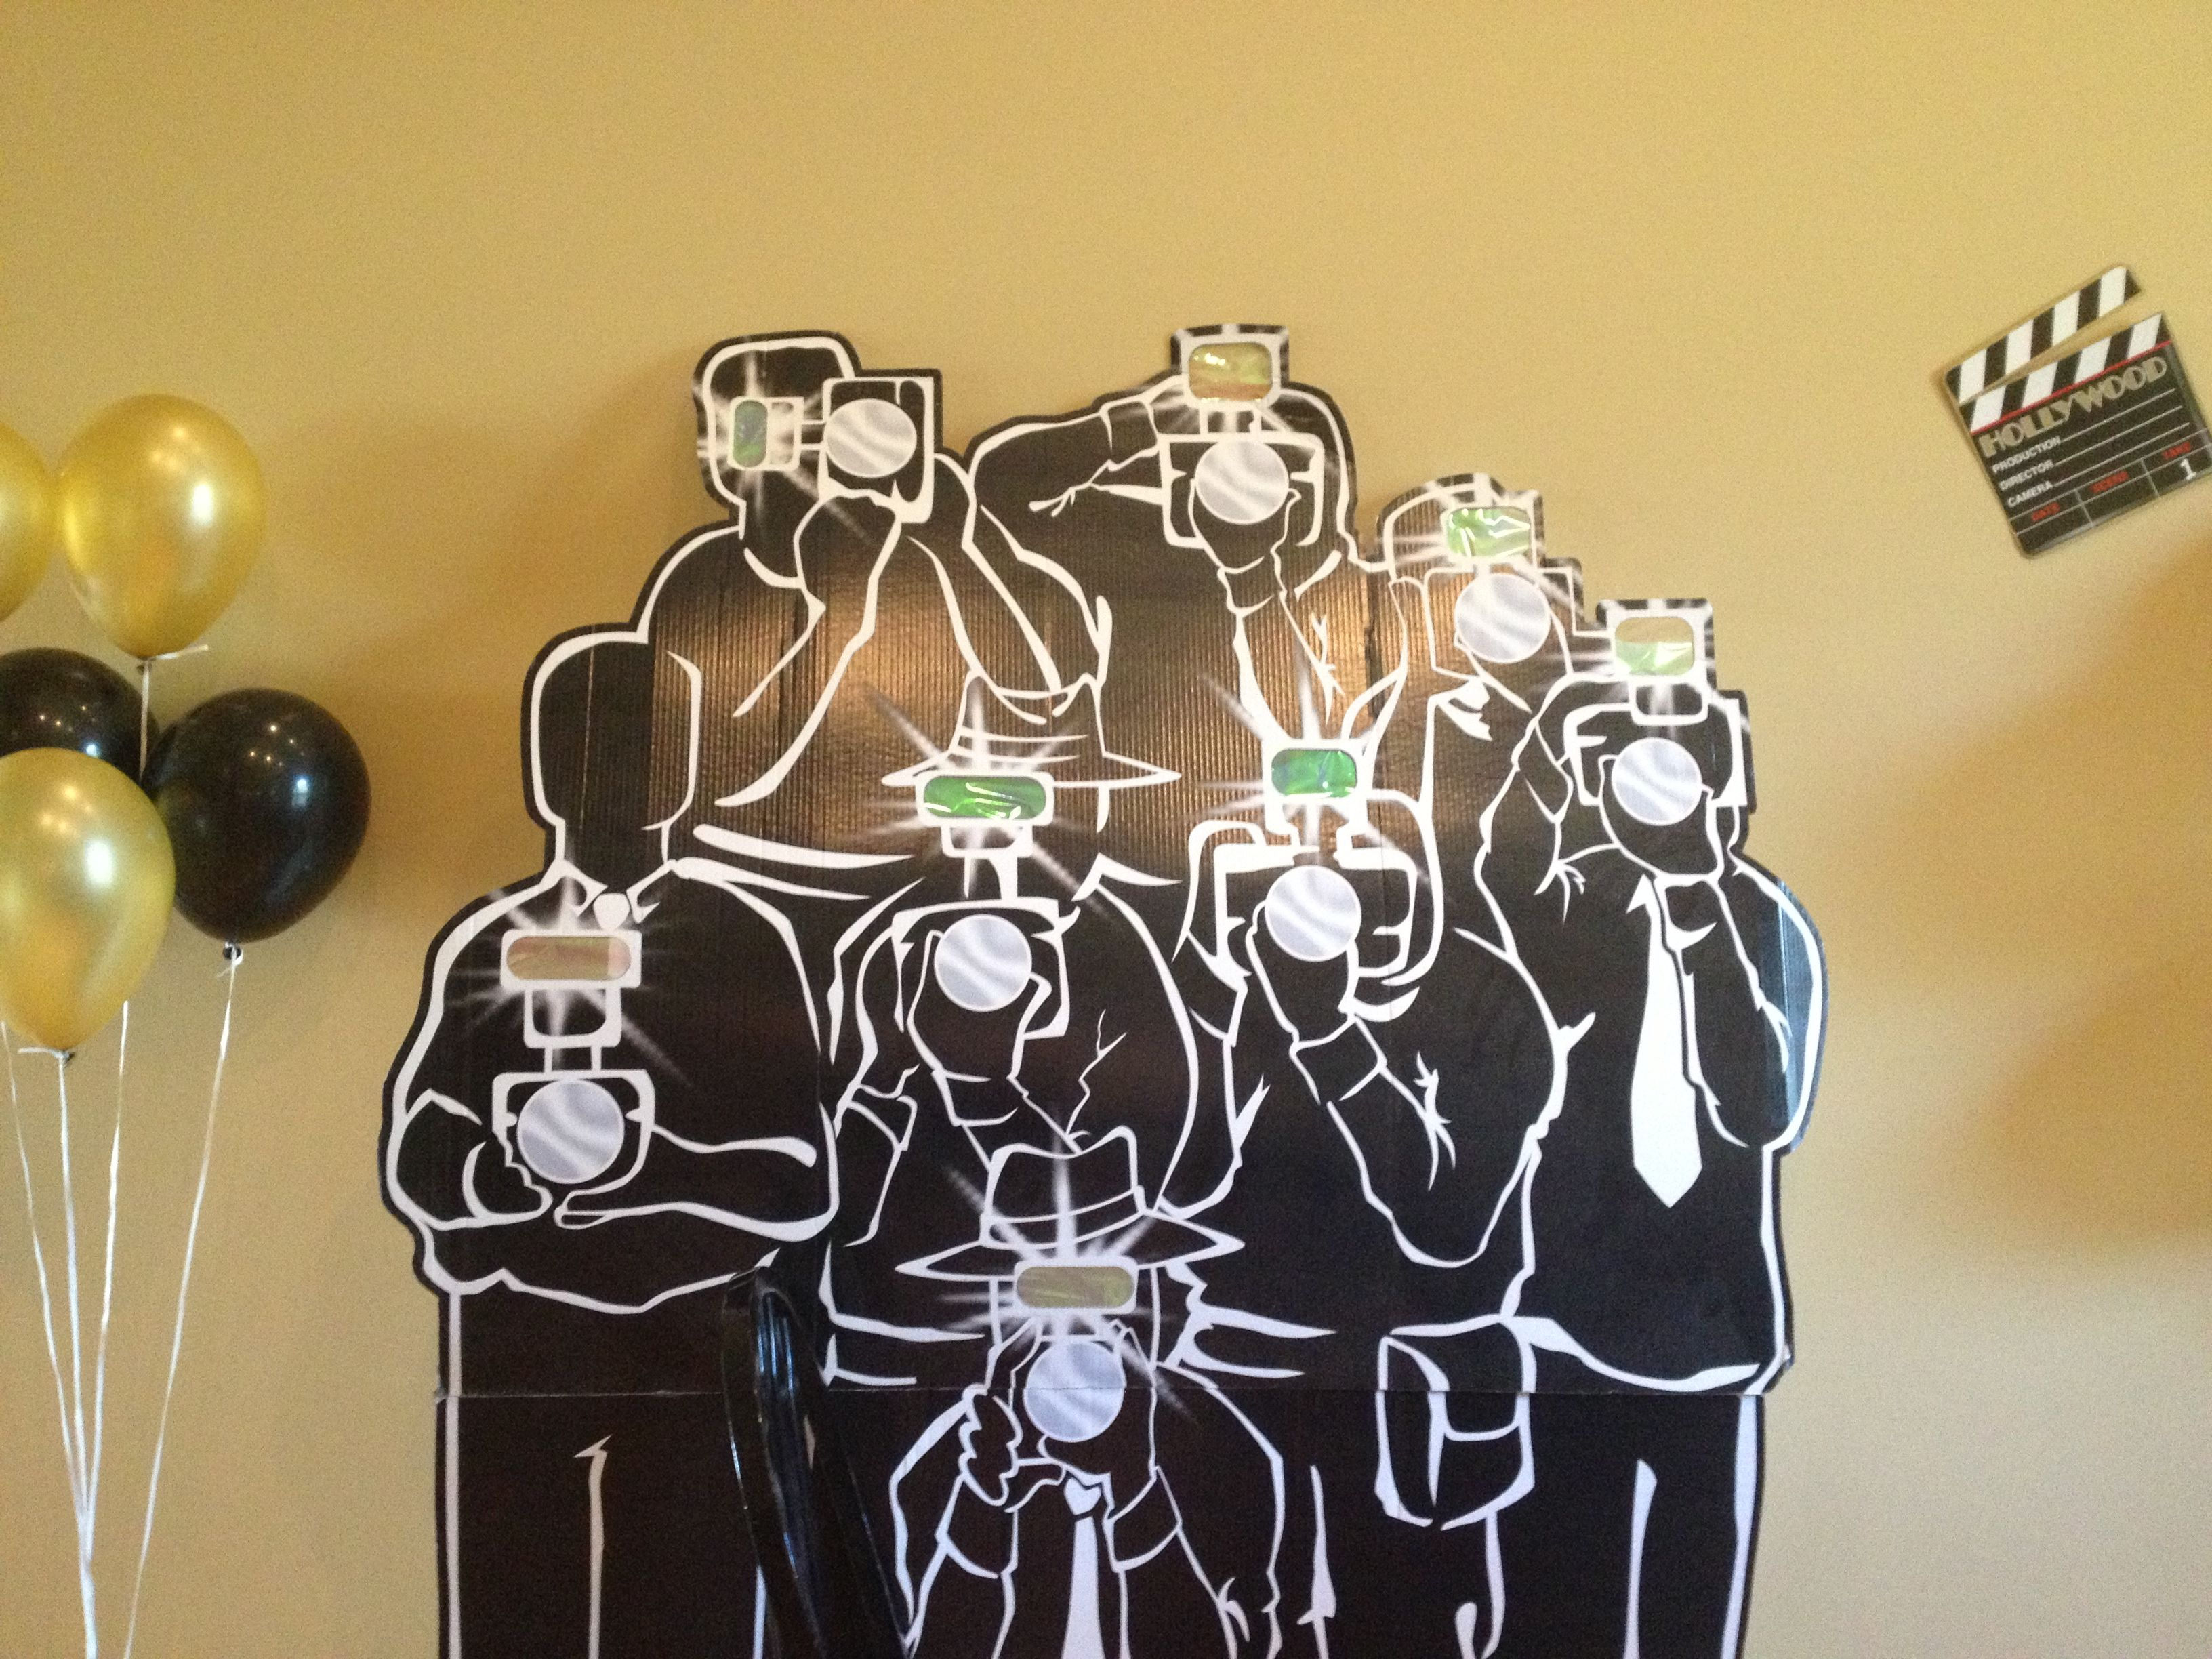 Bagno paparazzi ~ Cardboard paparazzi cutouts with flashers for the red carpet walk